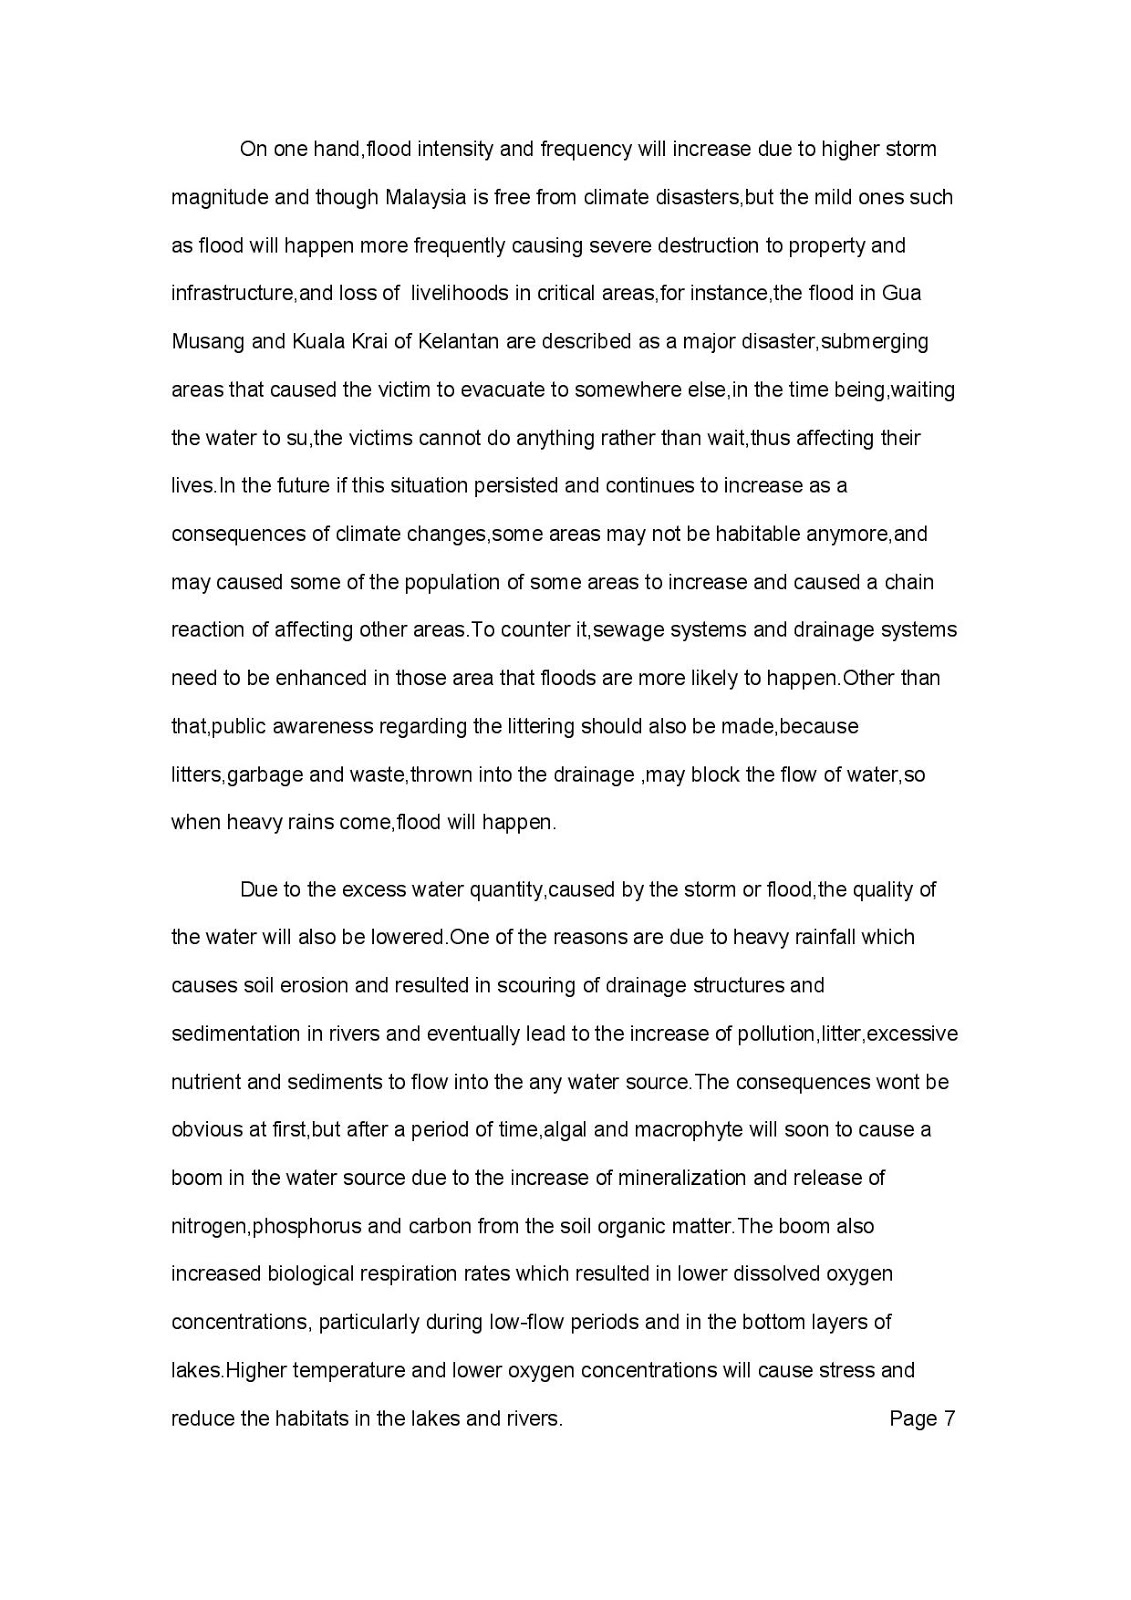 wong yan ce`architecture`e portfolio environmental sustainable design 1 nature us reflective essay we have to explore and write on environmental issues relating it to the people and built environment